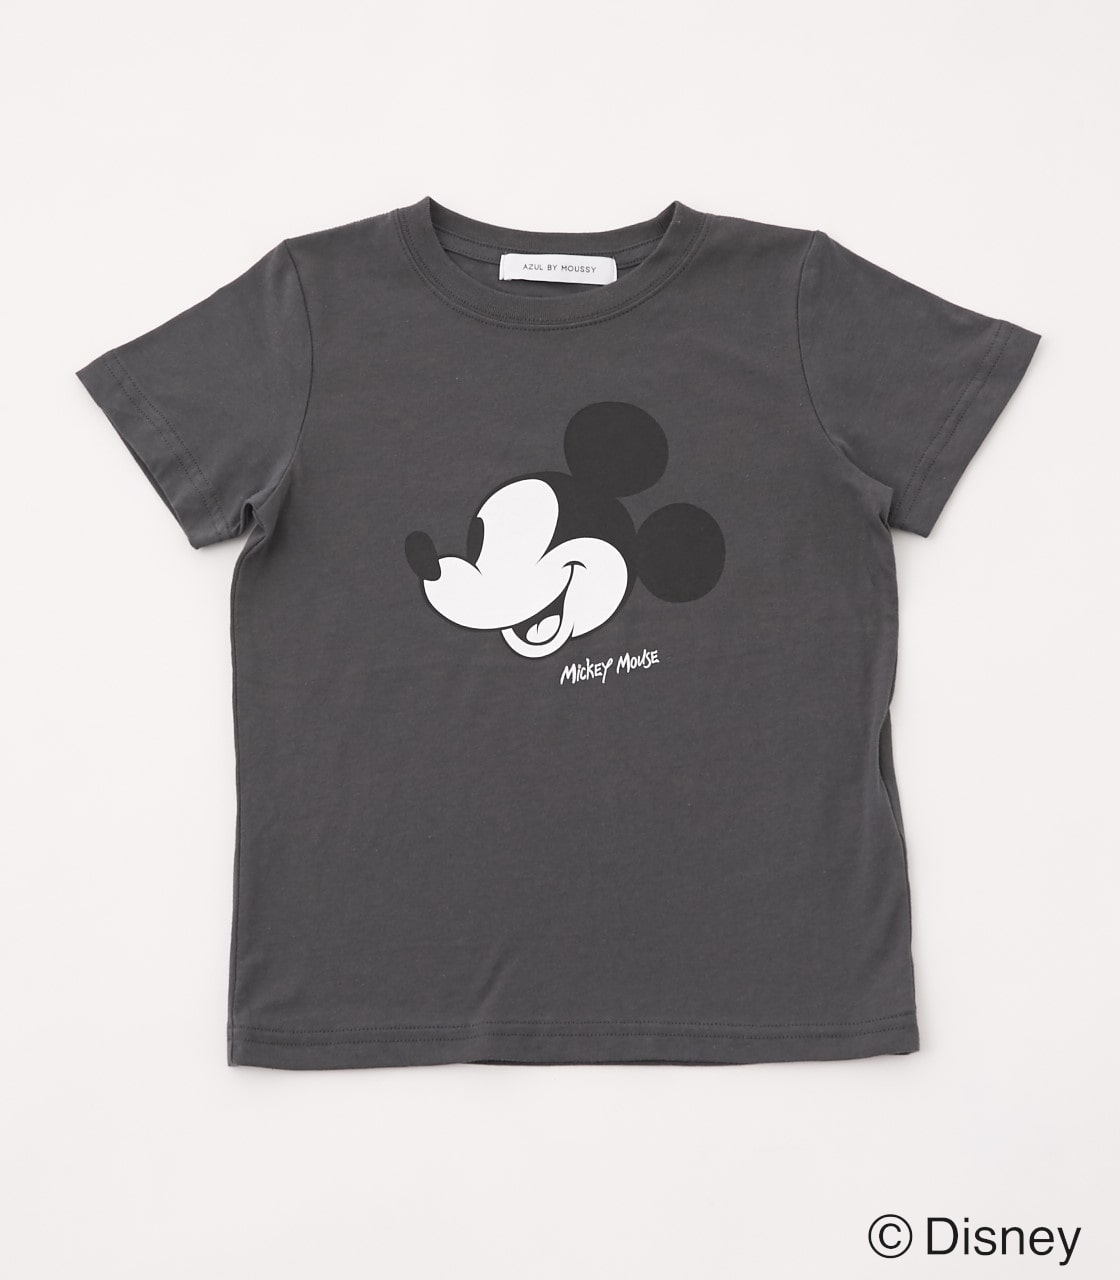 【KIDS】Mickey Mouse TEE 詳細画像 L/BLK 1